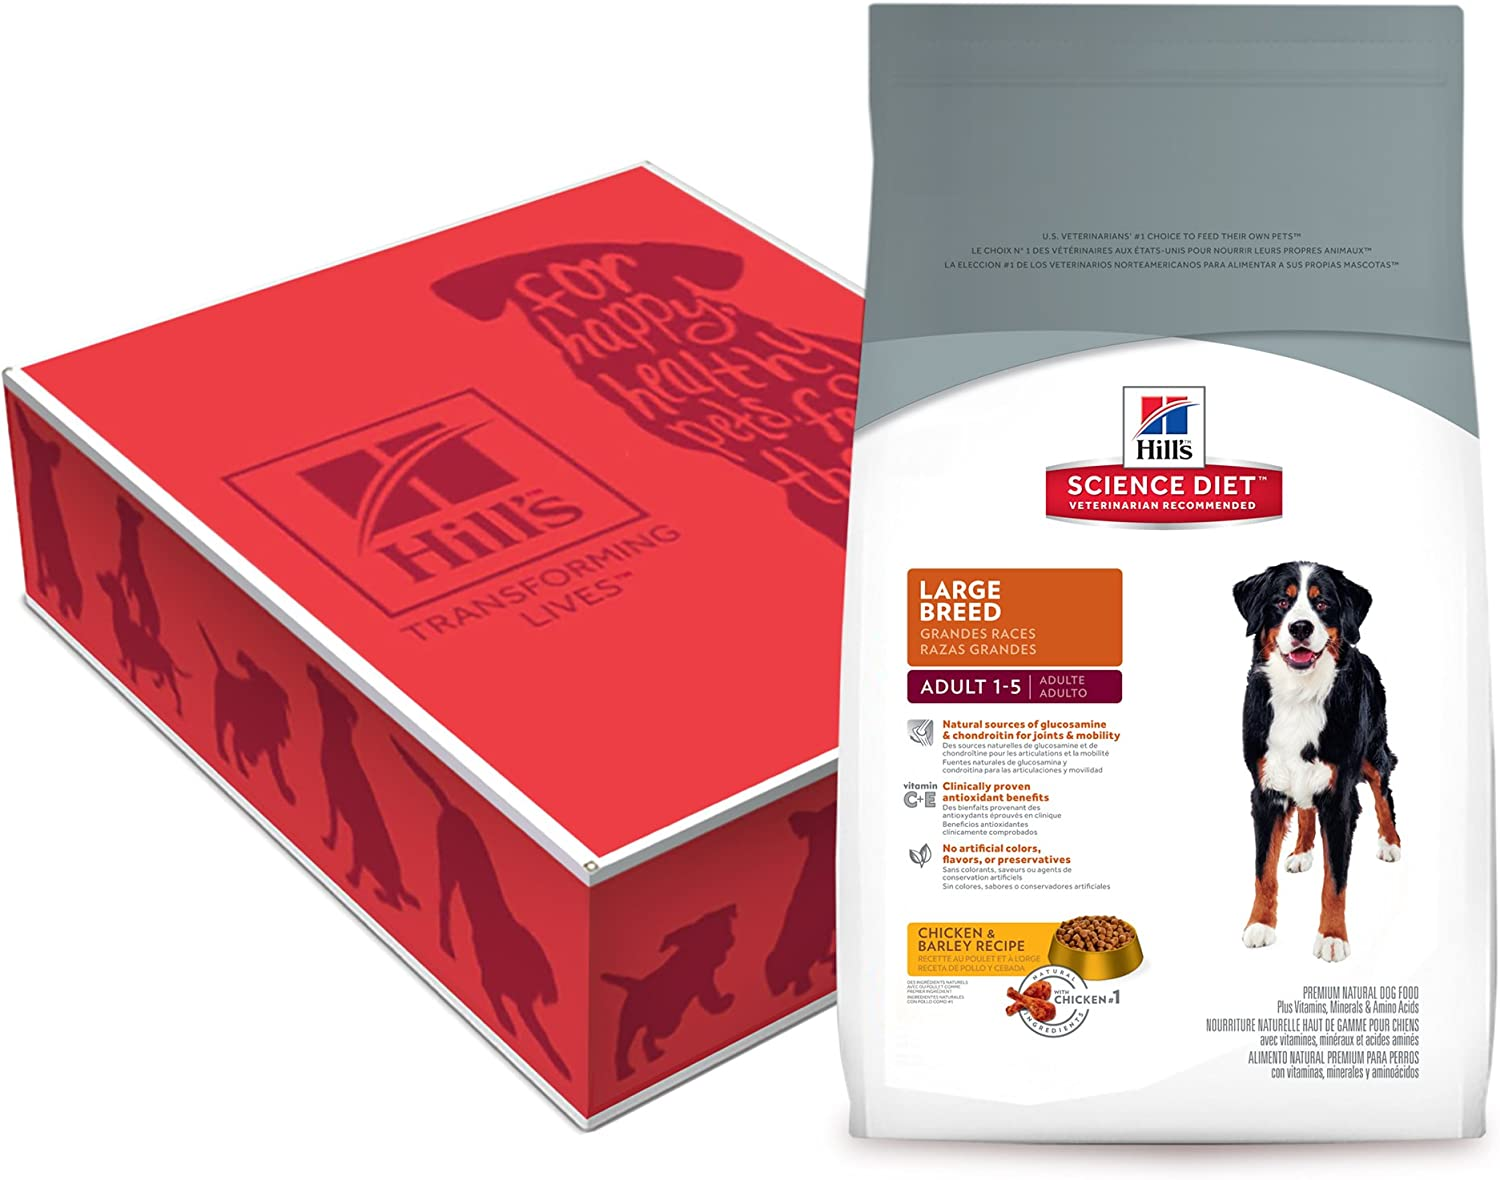 4. Hill's Science Diet Large Breed Dry Dog Food